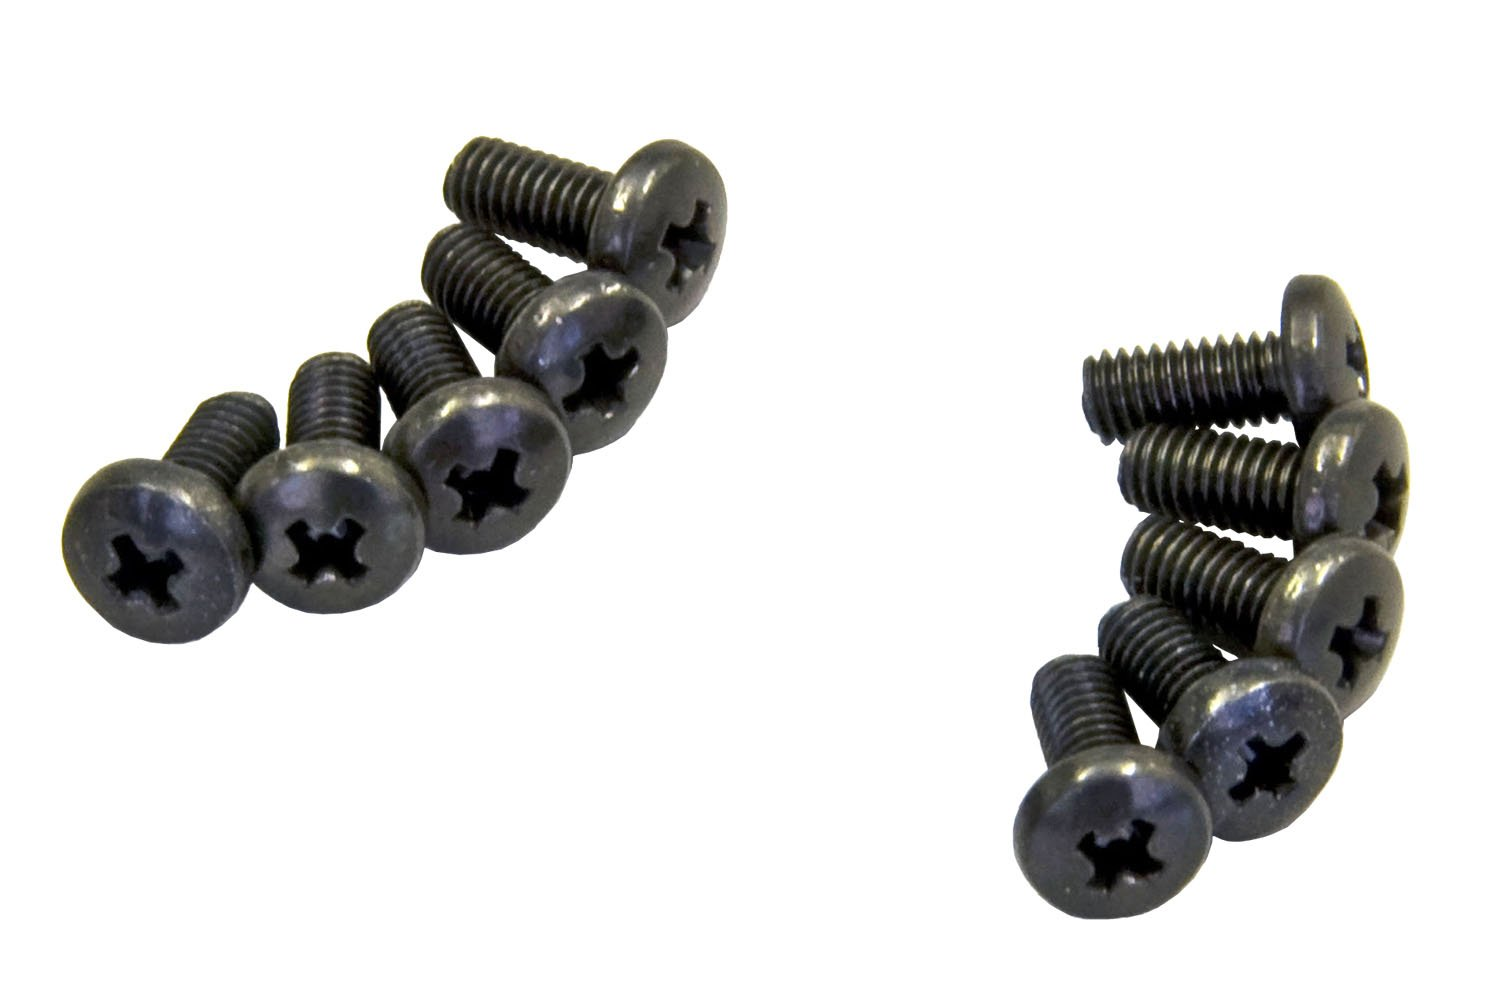 10 Kyosho 2.6x6mm Binder Head Screw